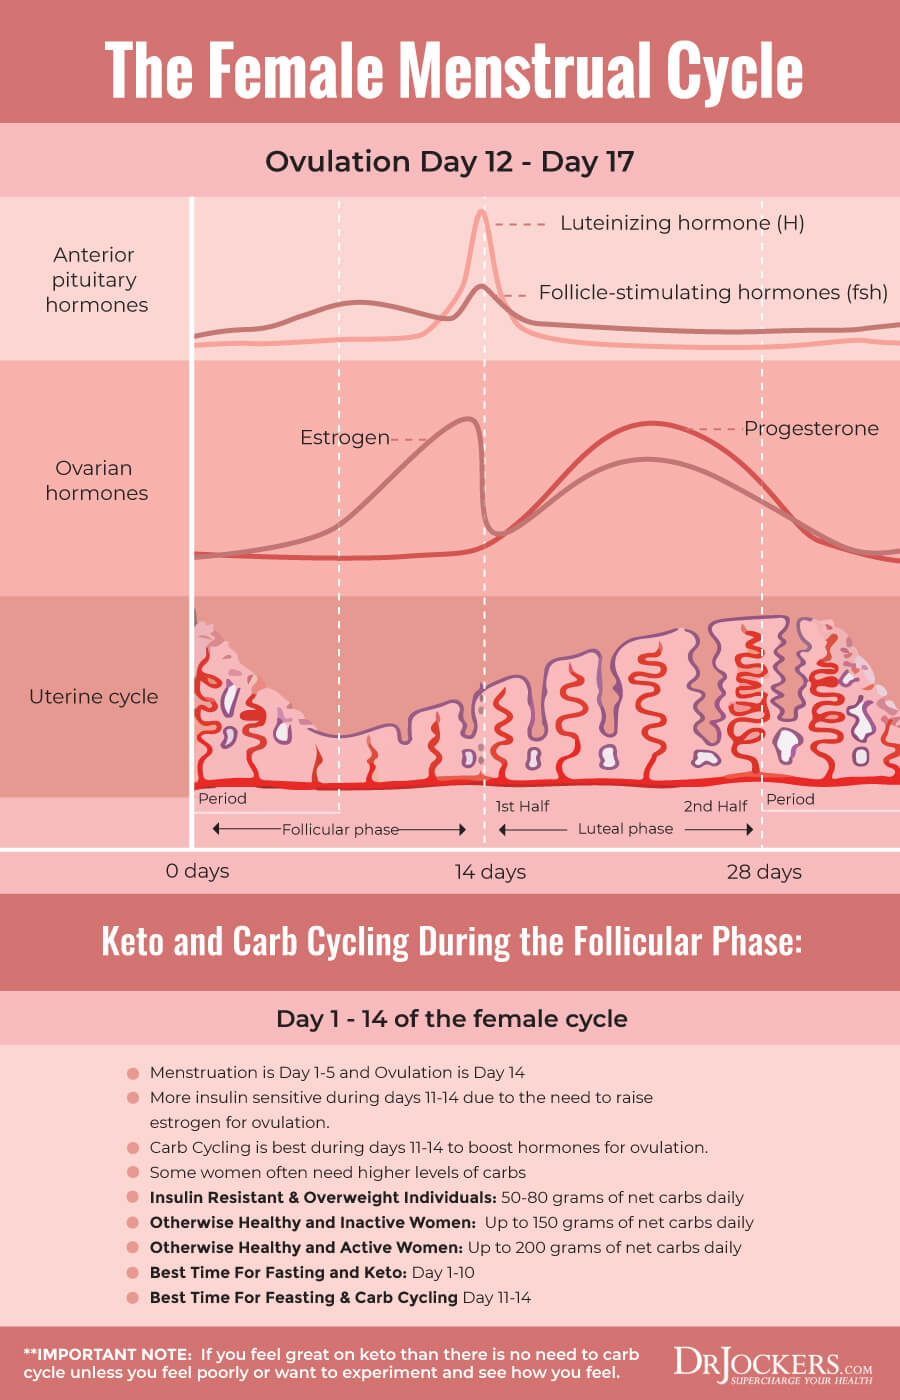 Menstrual Cycle, Menstrual Cycle Optimization with Feast/Famine Cycling